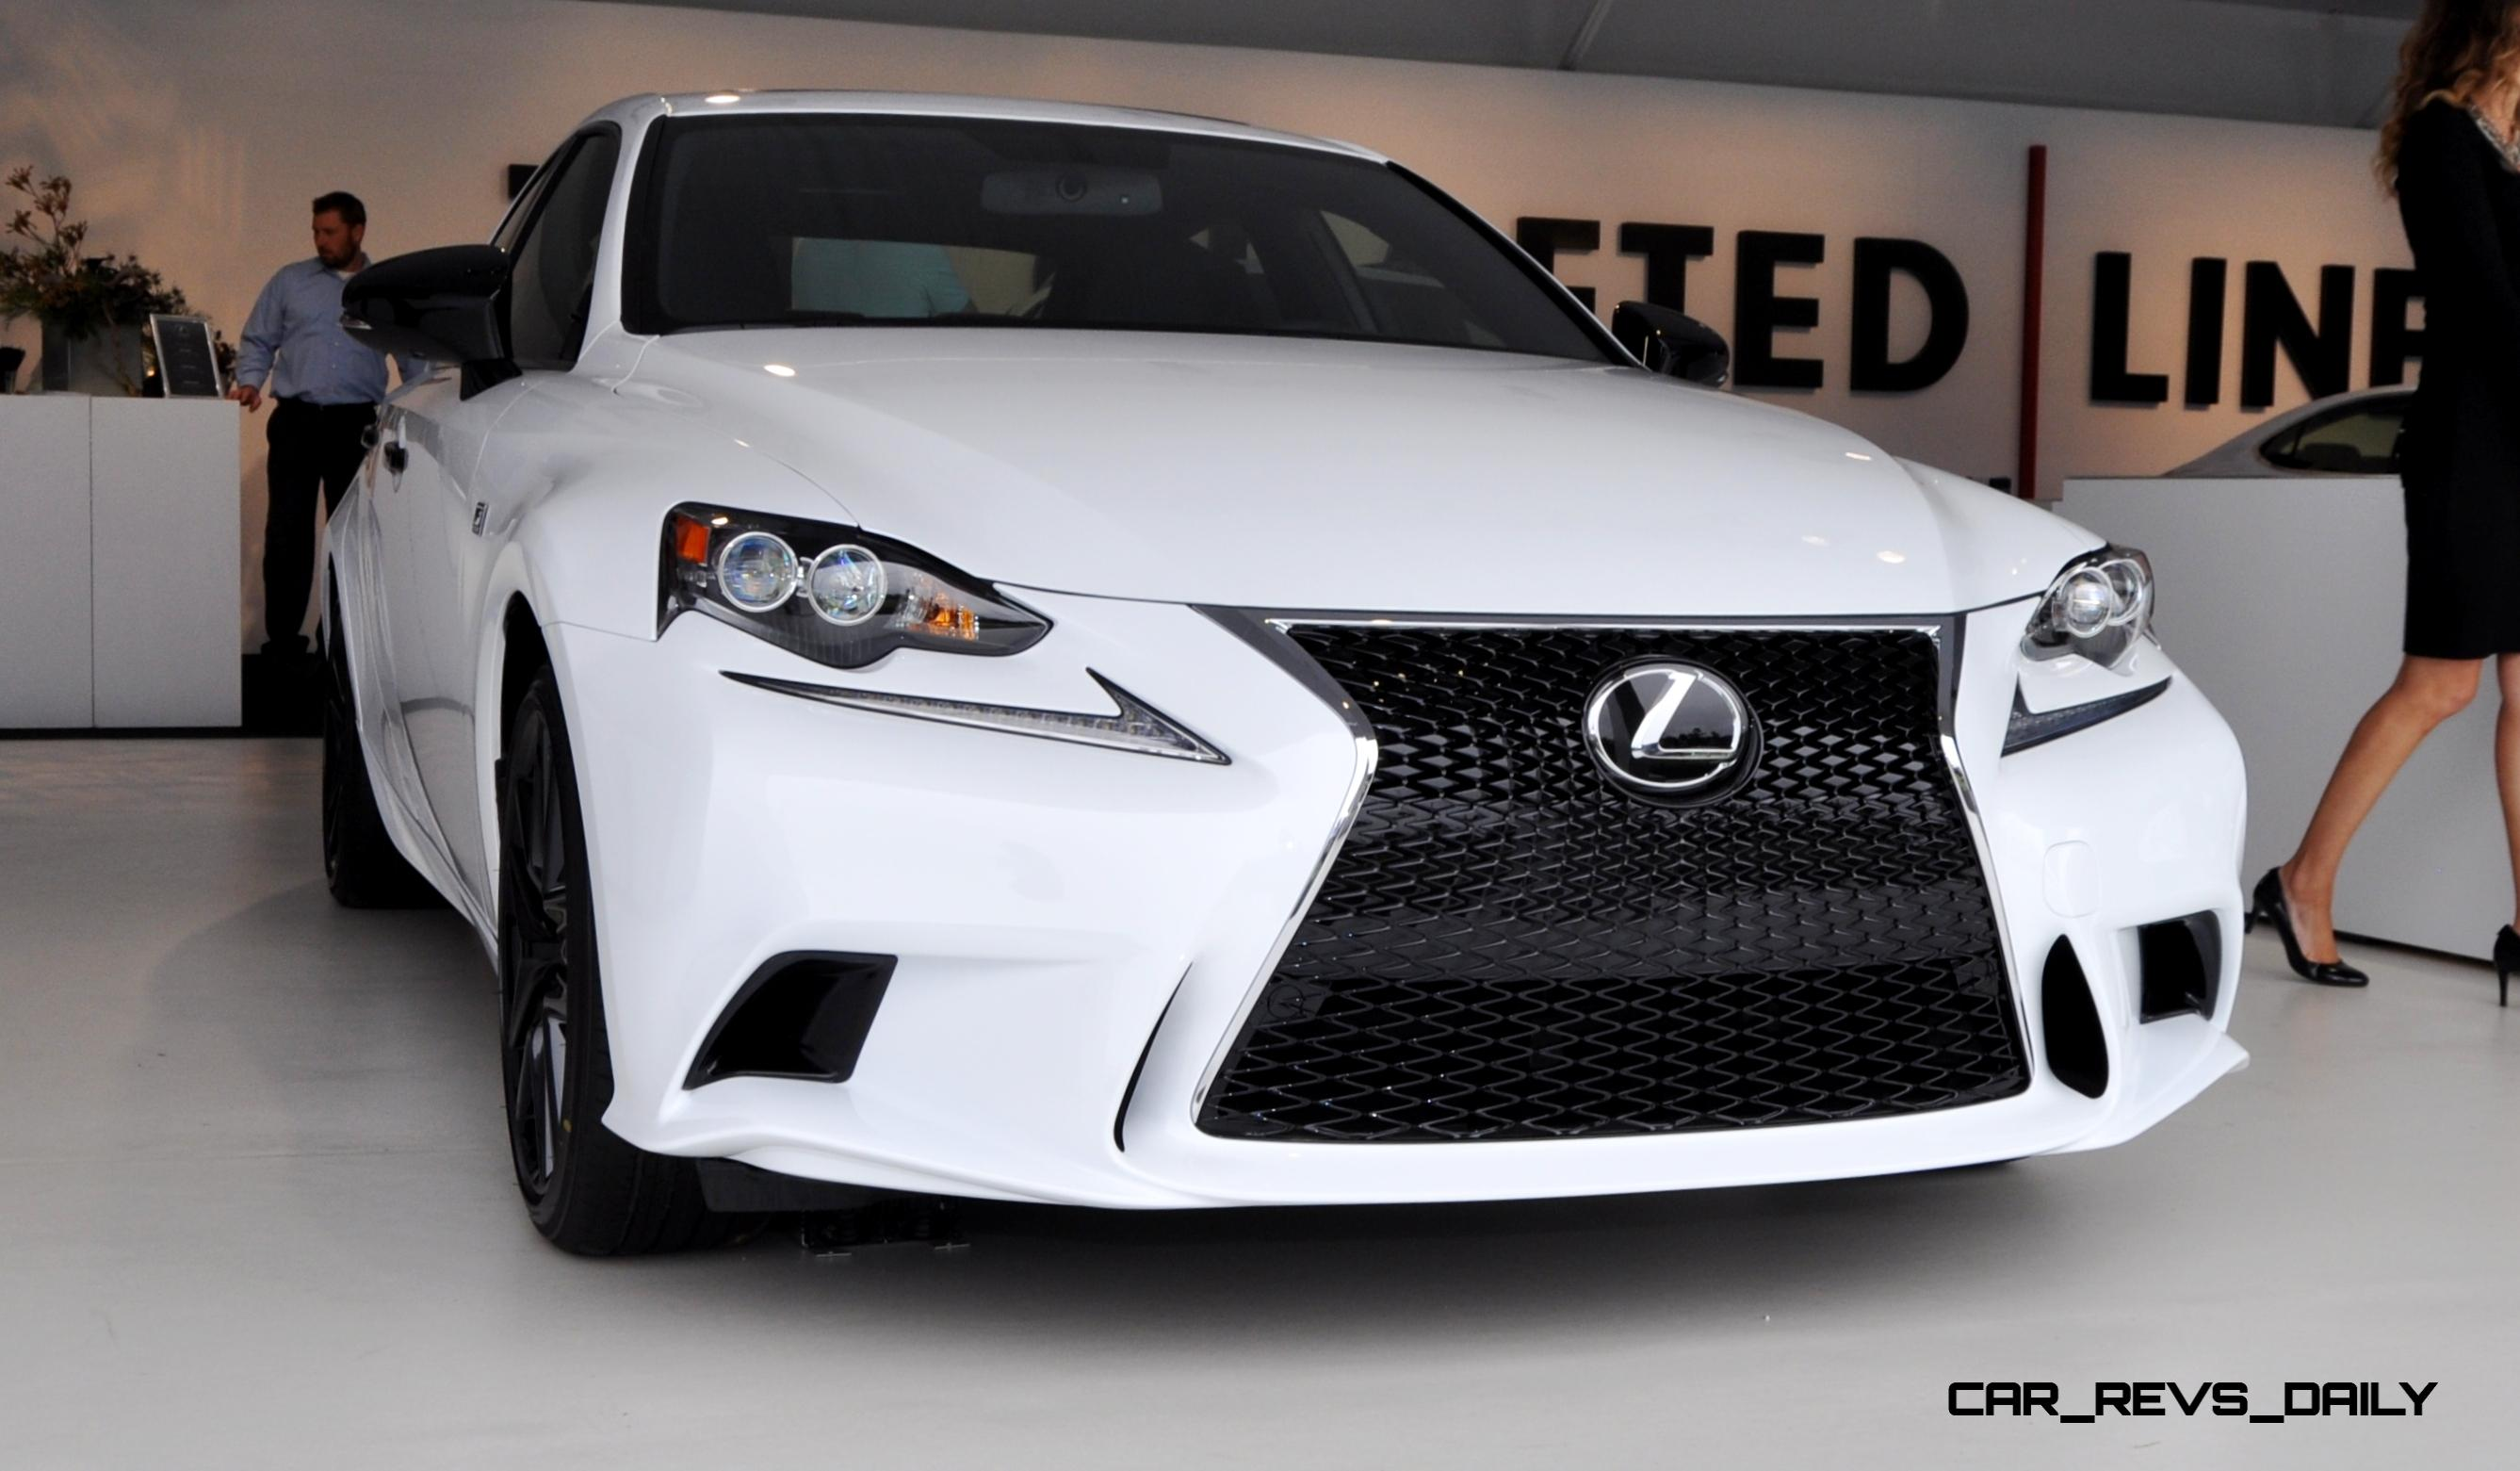 2015 lexus is250 f sport crafted line in 32 all new high res photos. Black Bedroom Furniture Sets. Home Design Ideas